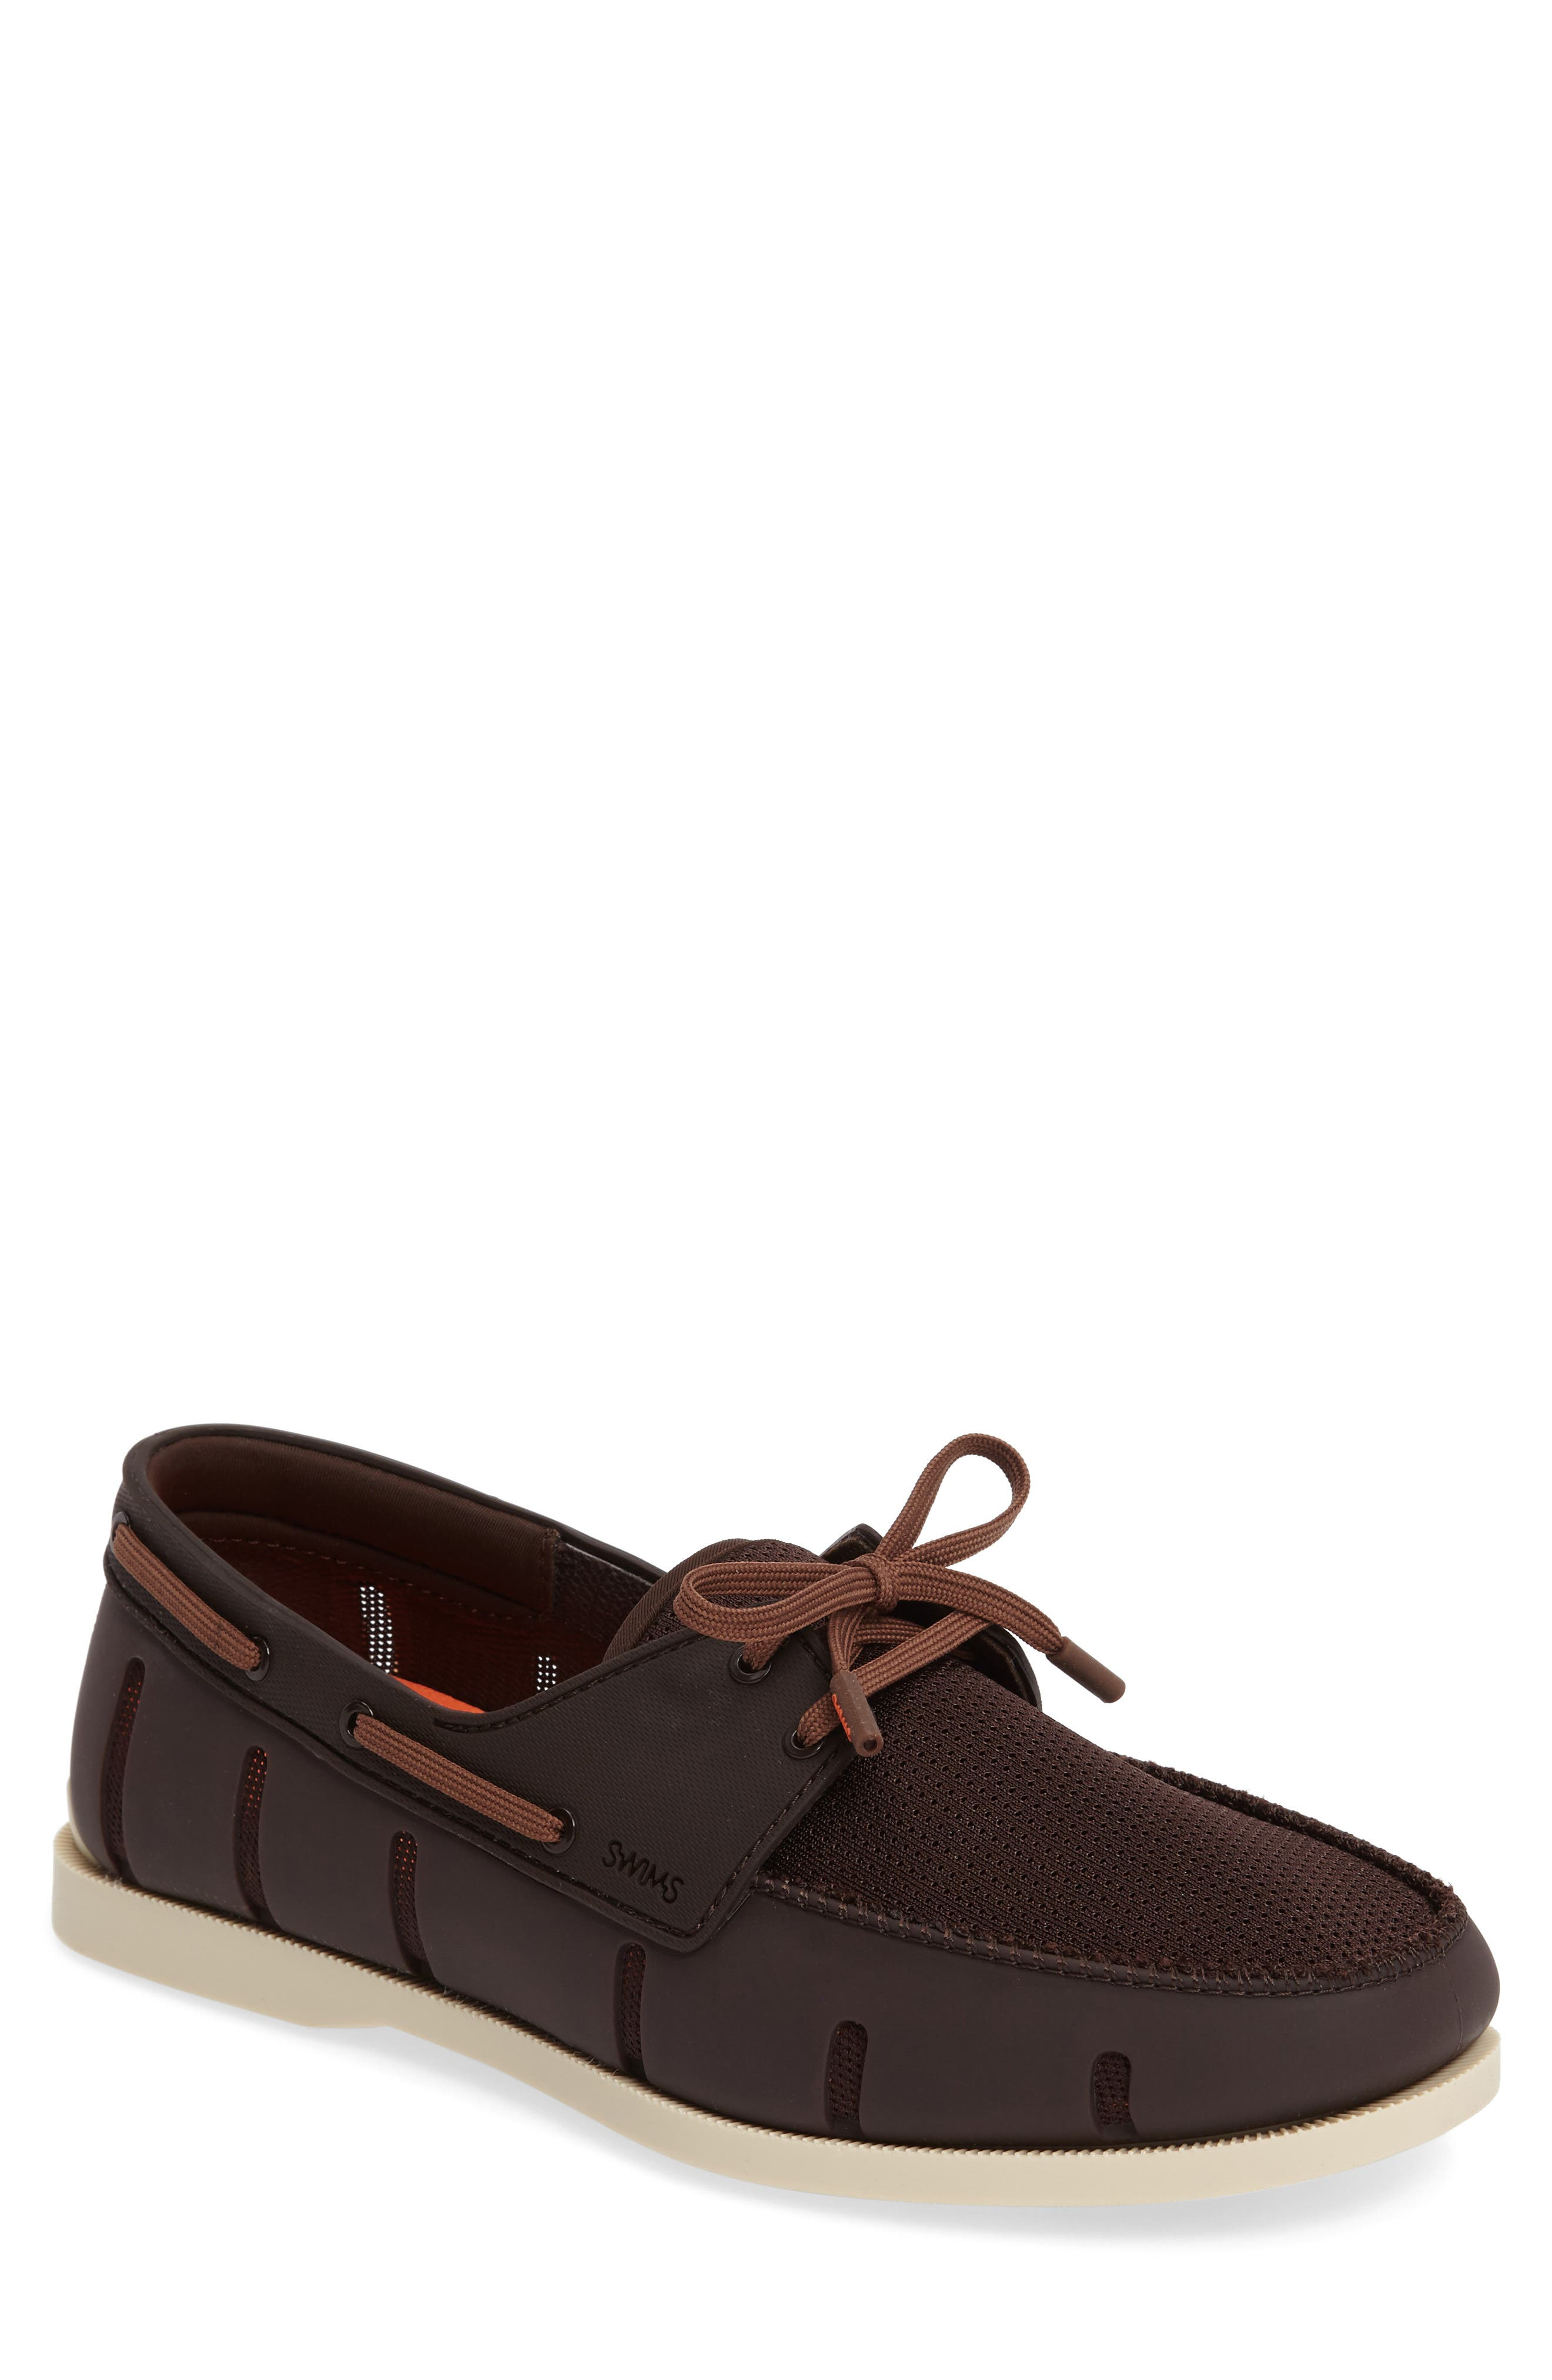 Main Image - Swims 'Boat' Loafer (Men)